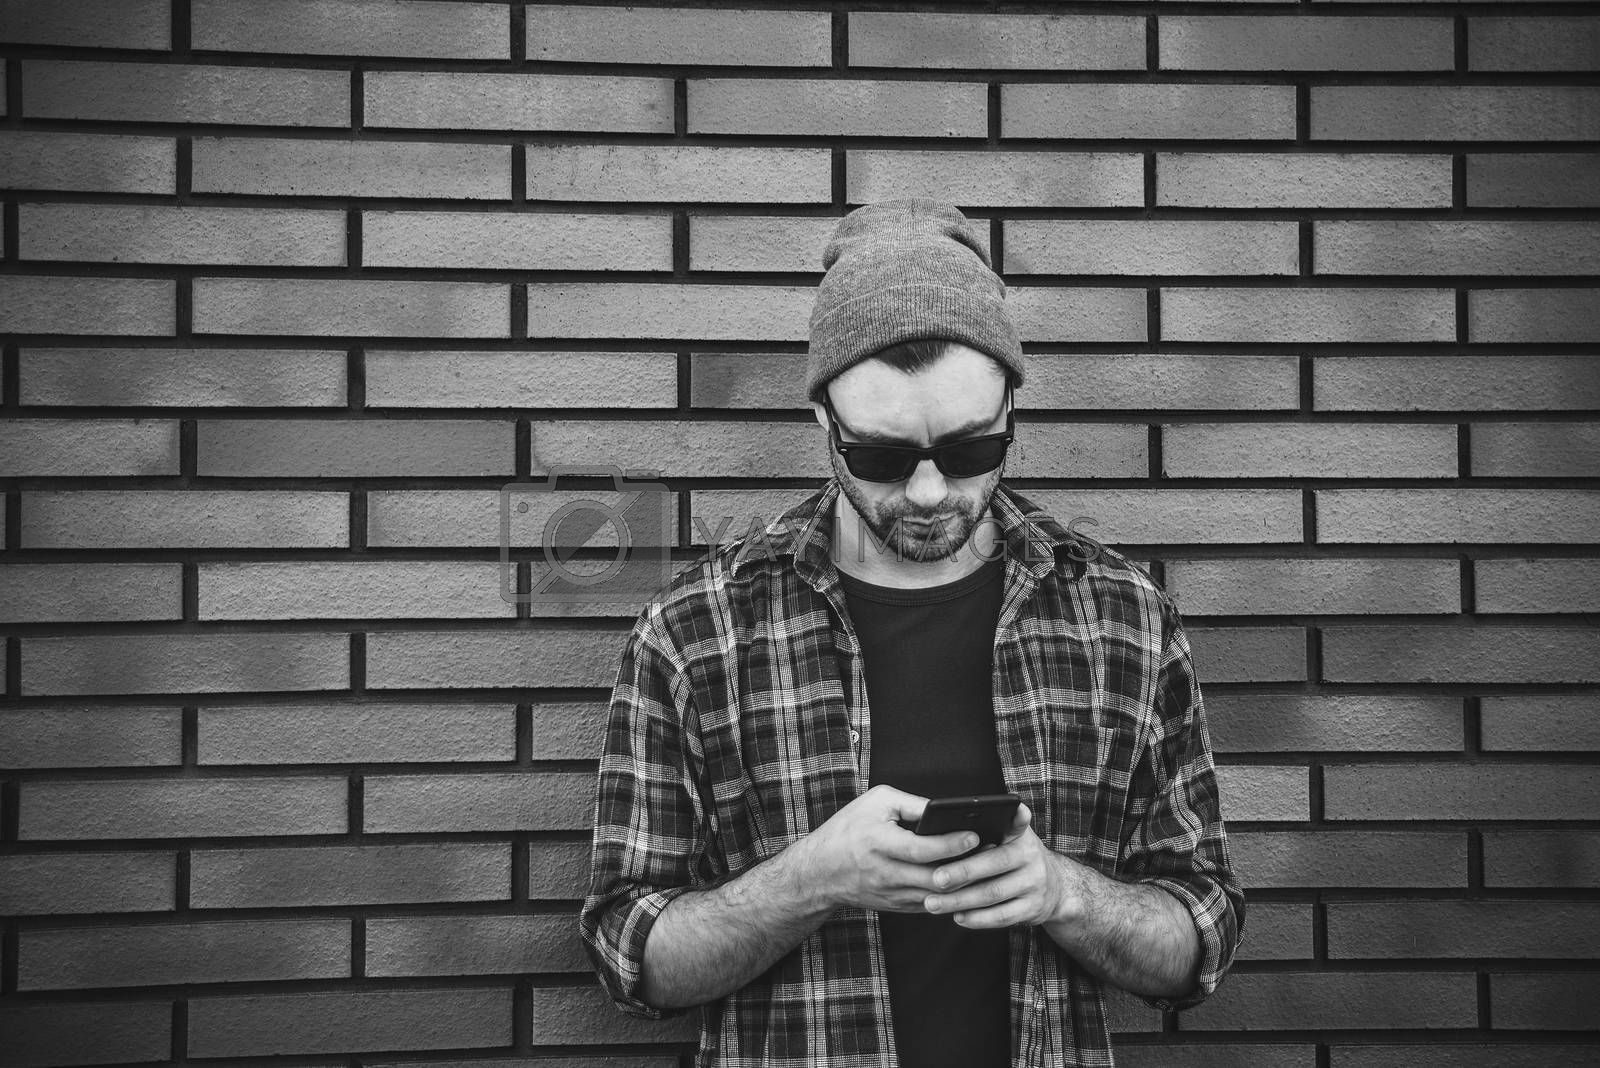 Hipster sms texting phone app in city street on brick wall background. Amazing man holding smartphone in smart casual wear standing.